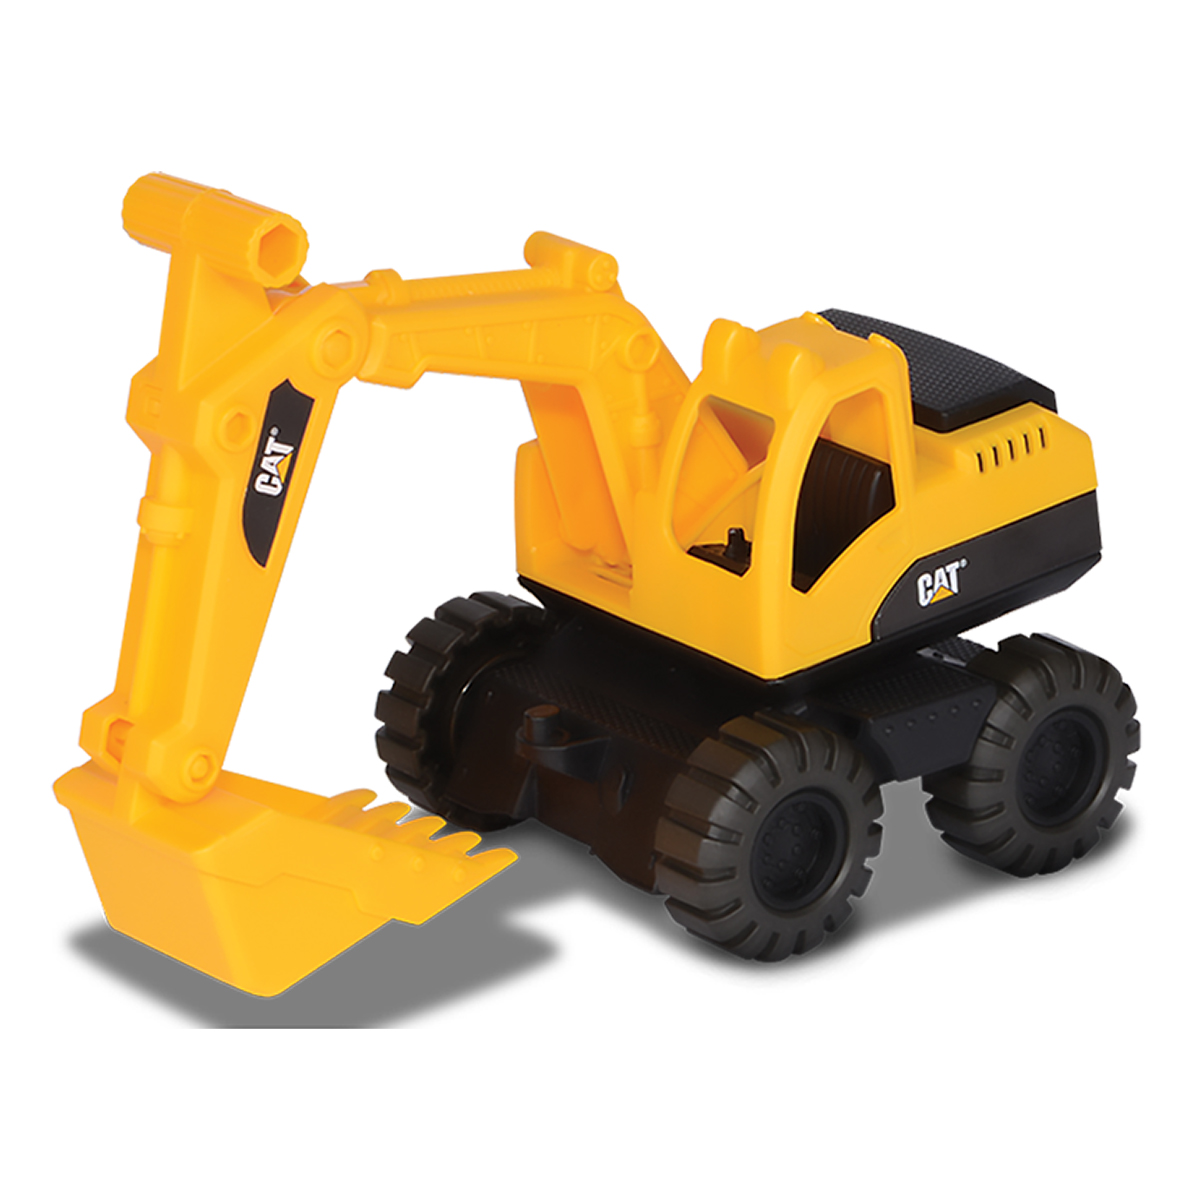 Excavator Toy State Rugged Machines, 38 Cm